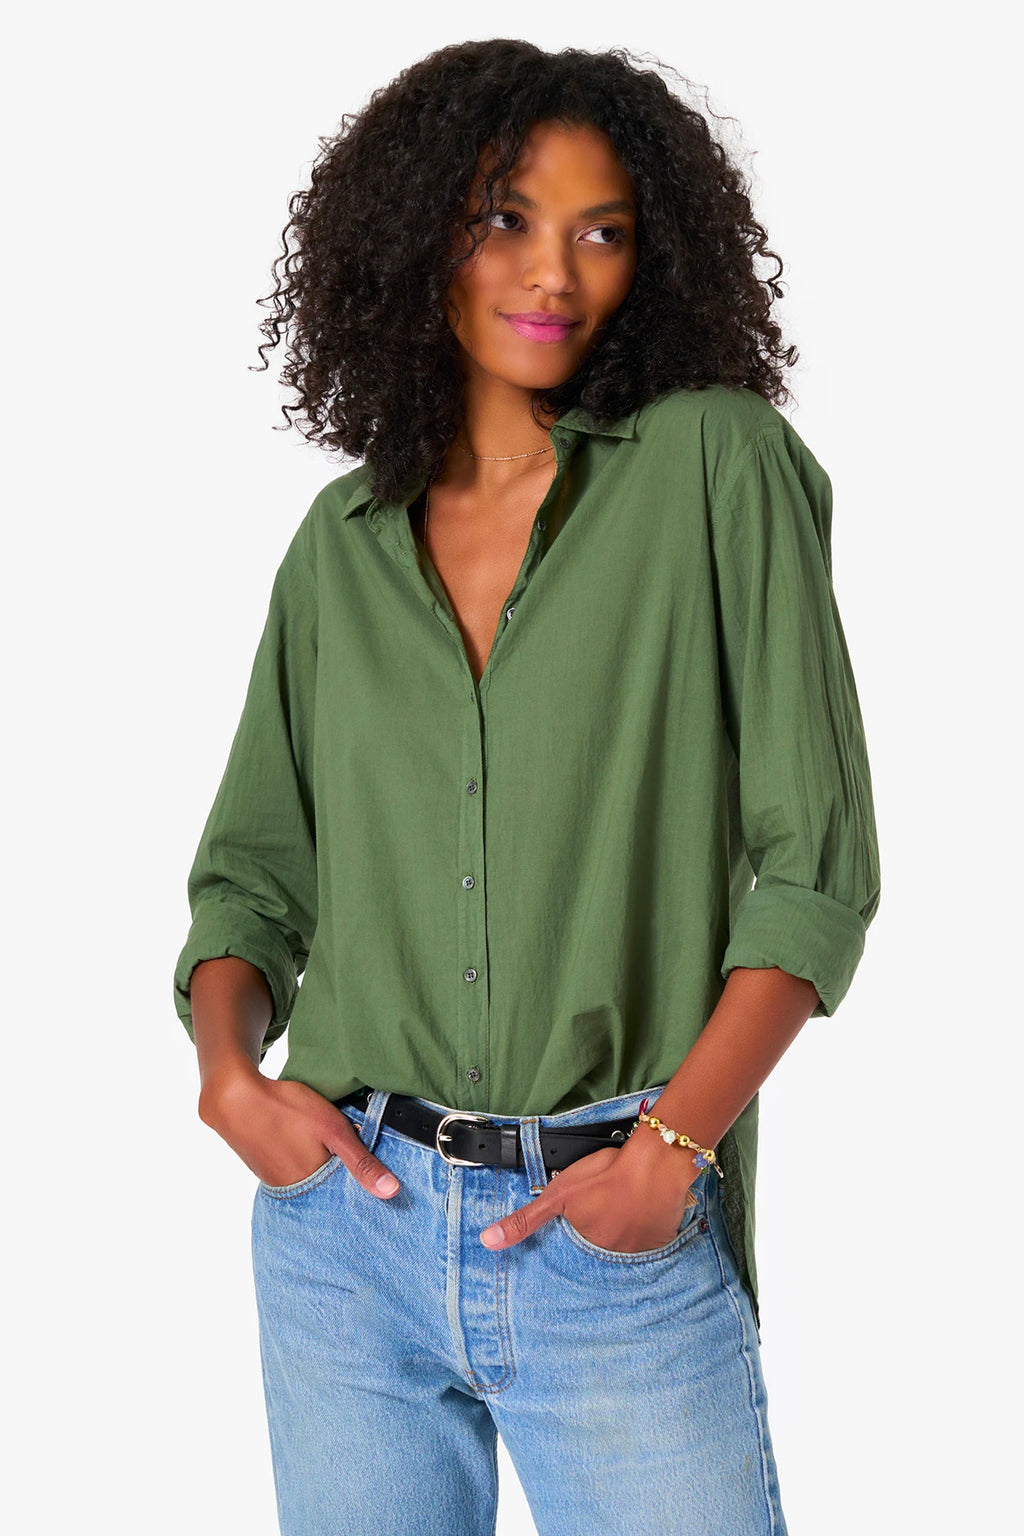 Xirena Cotton Poplin Beau Shirt in Olive Palm